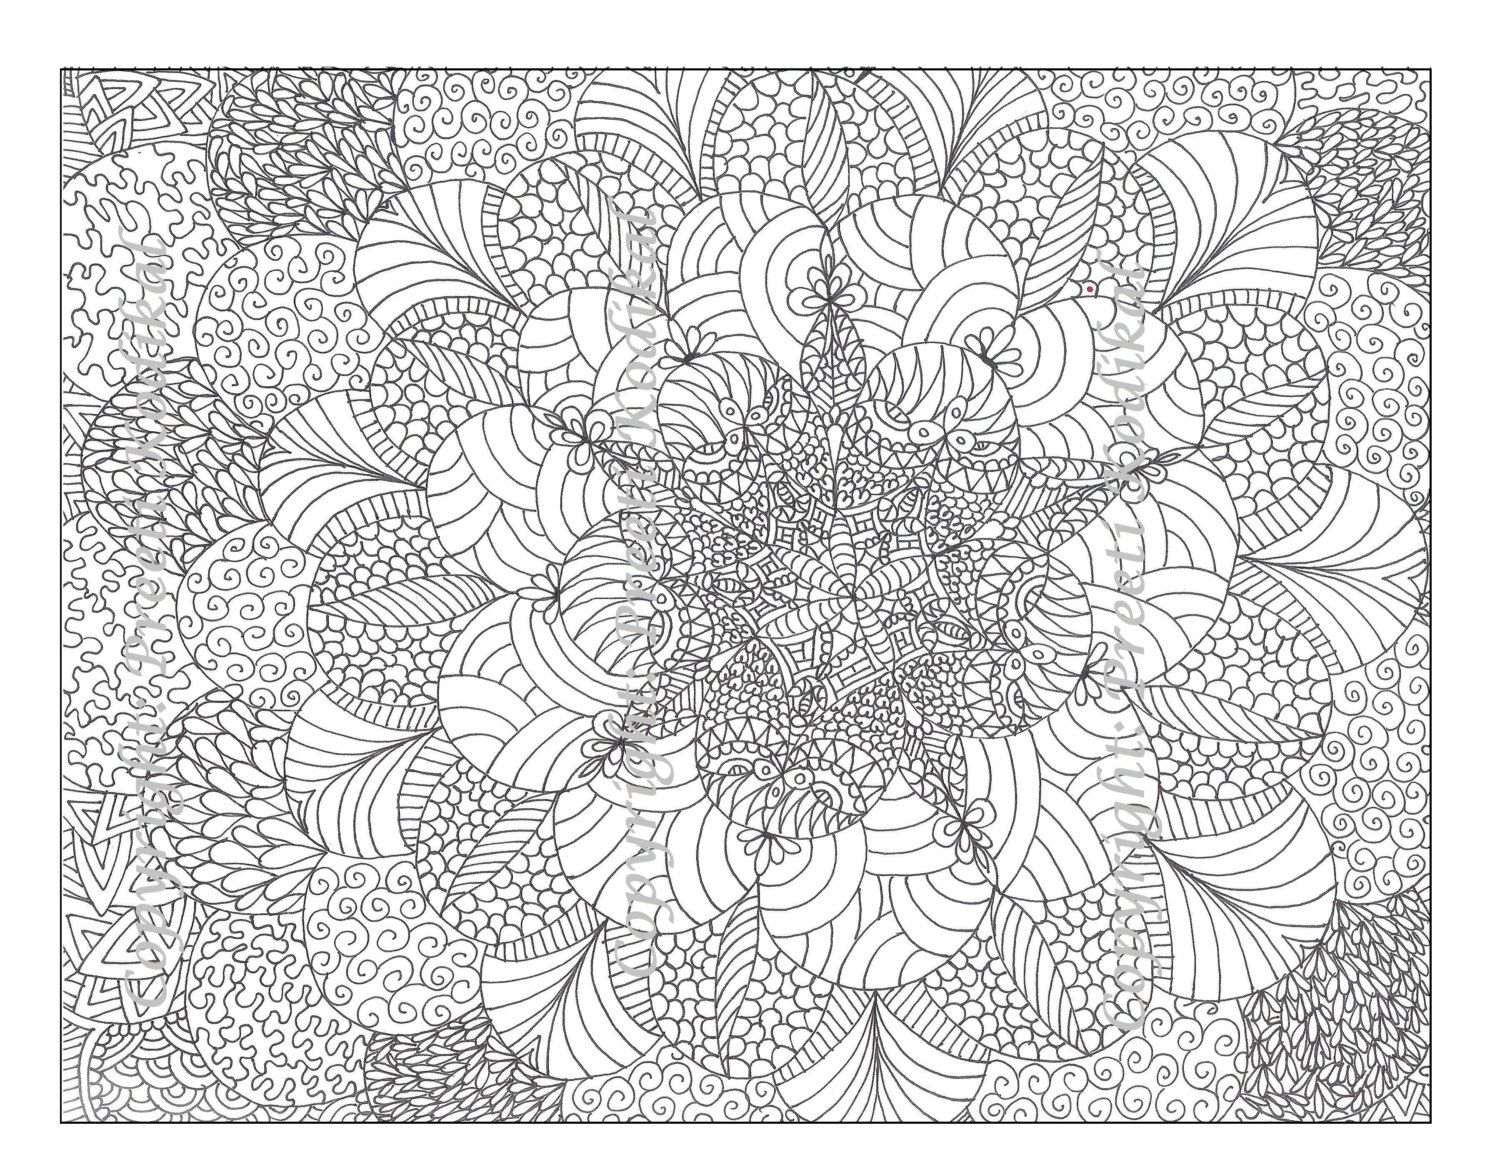 henna coloring pages | Pen illustration printable coloring page ...